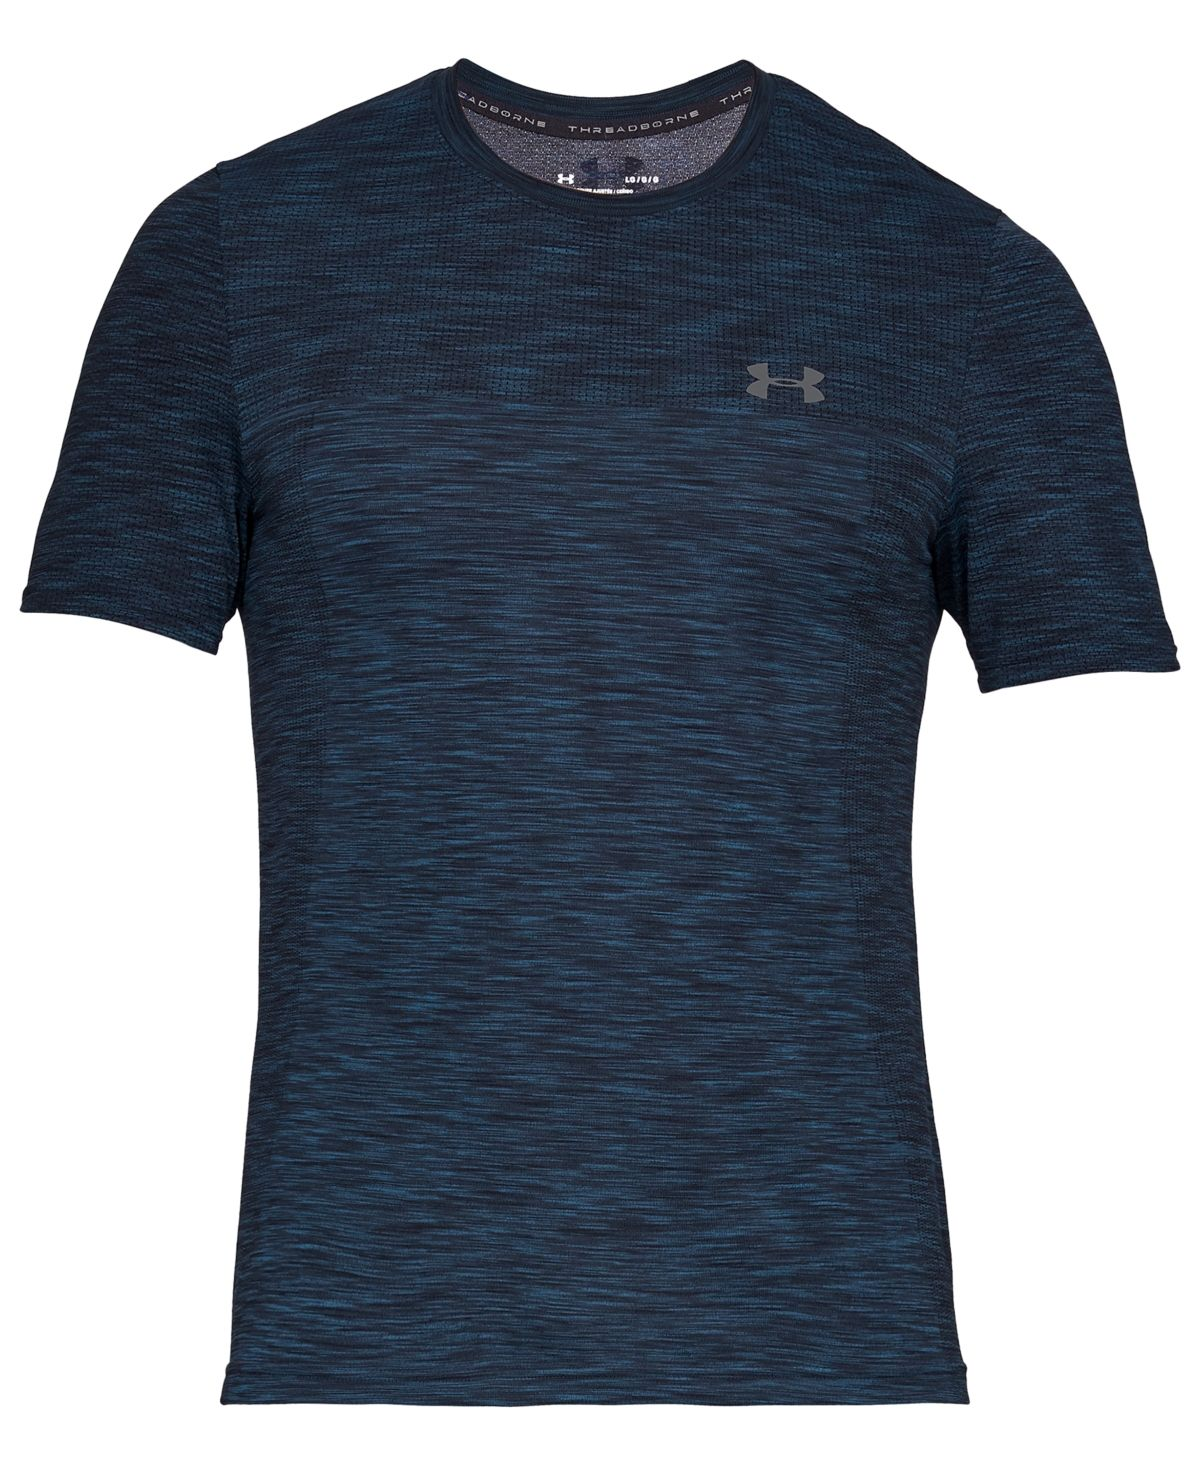 Under Armour Men's Vanish Seamless Short Sleeve & Reviews - Men - Macy's #oldtshirtsandsuch